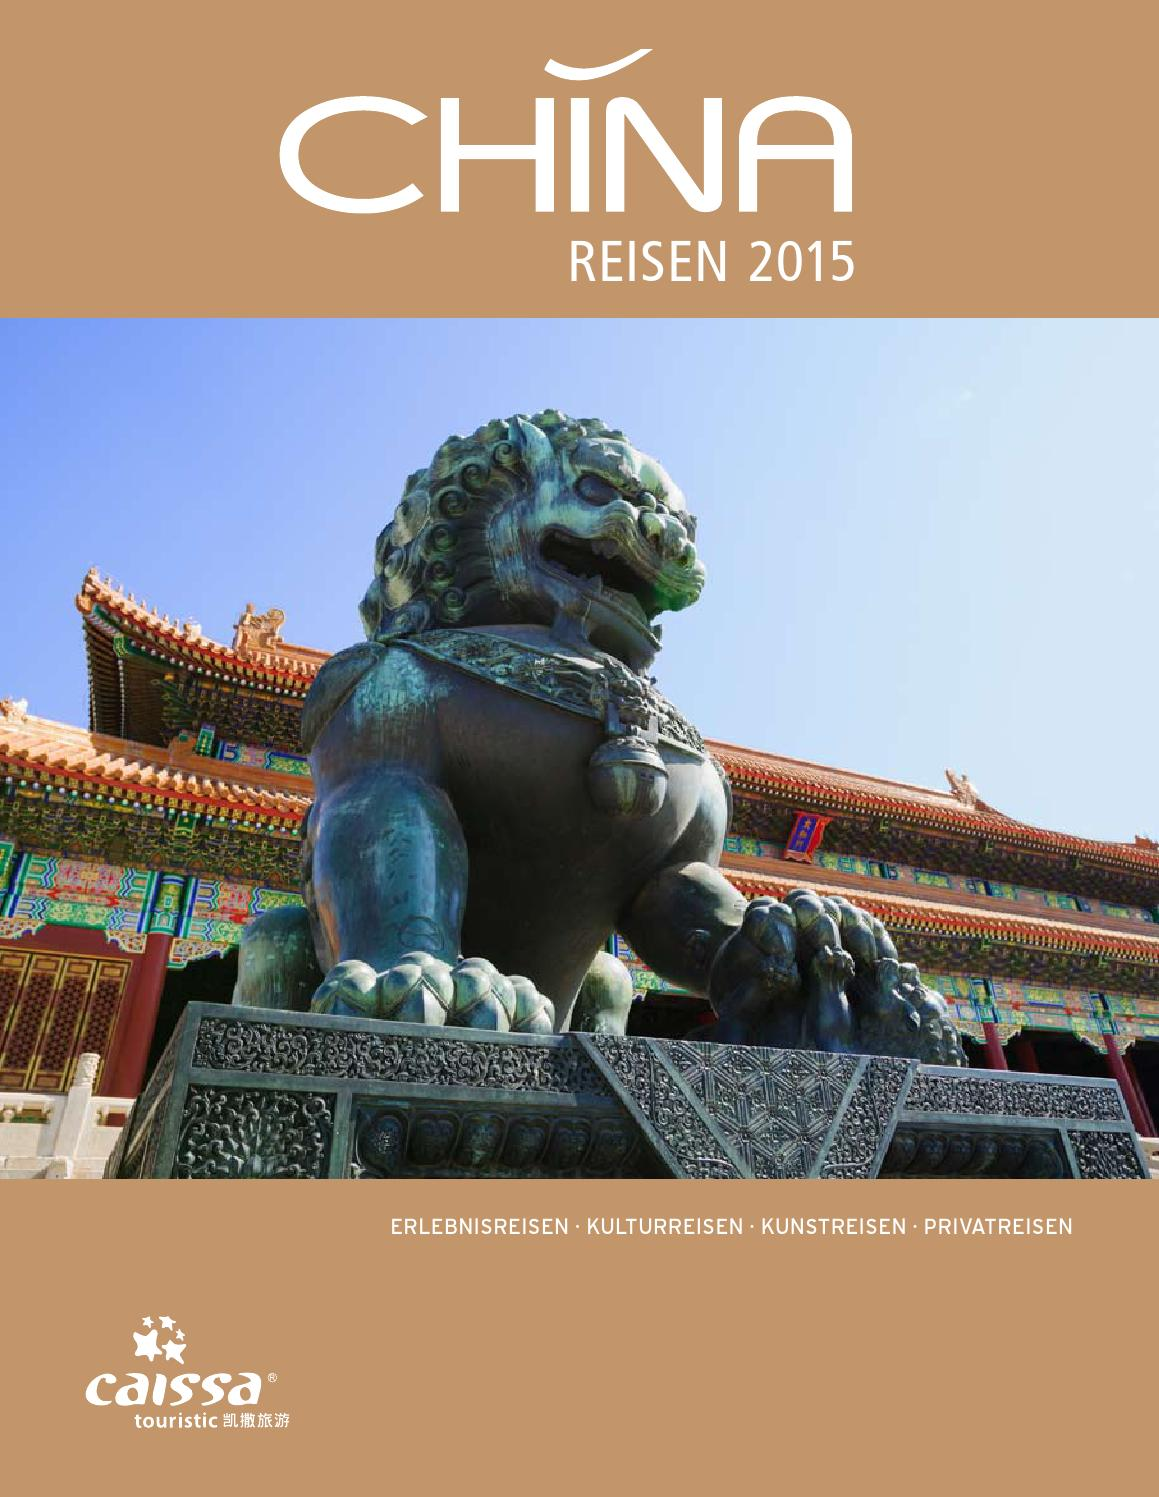 CHINA REISEN 2015 by CAISSA Touristic - issuu